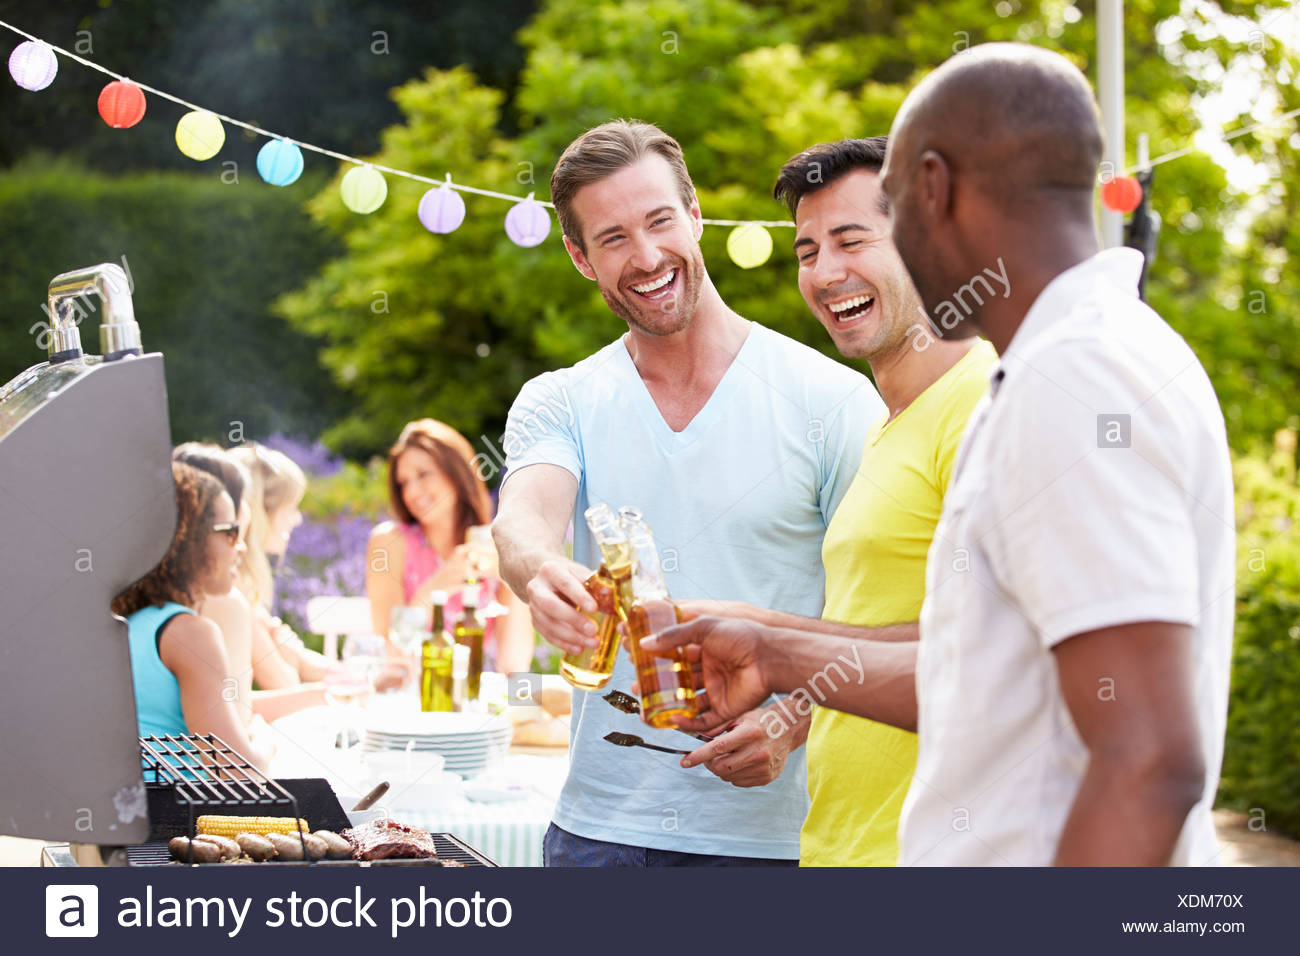 Group Of Men Cooking On Barbeque At Home - Stock Image